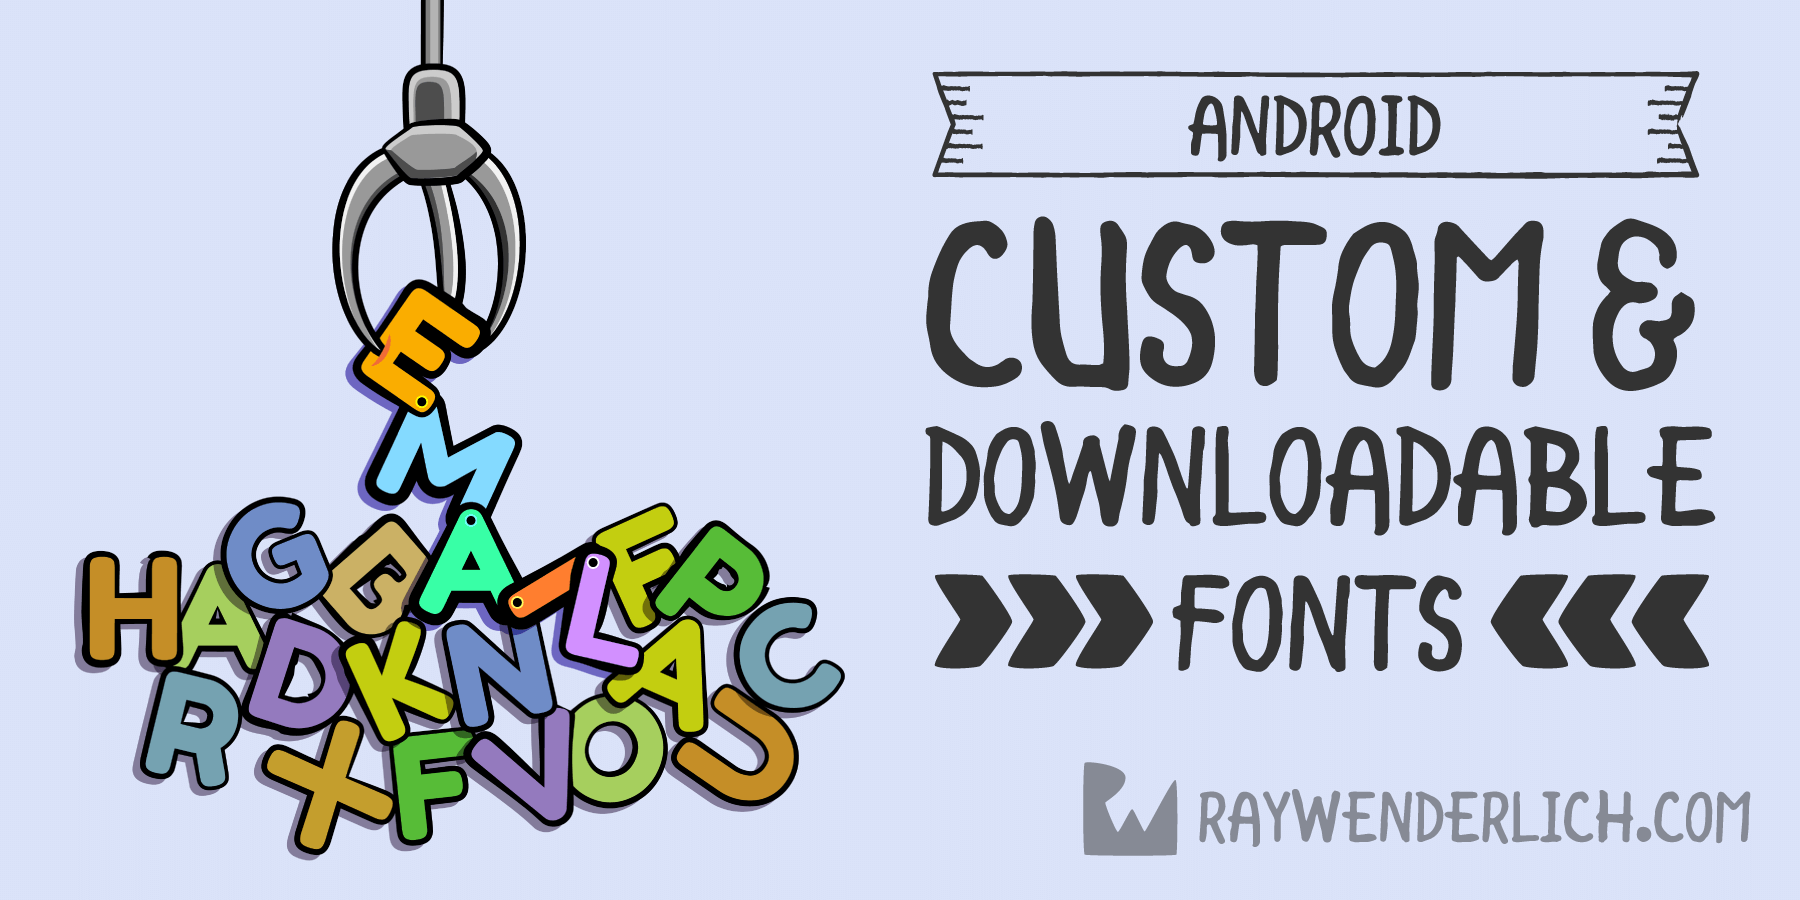 Custom and Downloadable Fonts on Android | raywenderlich com